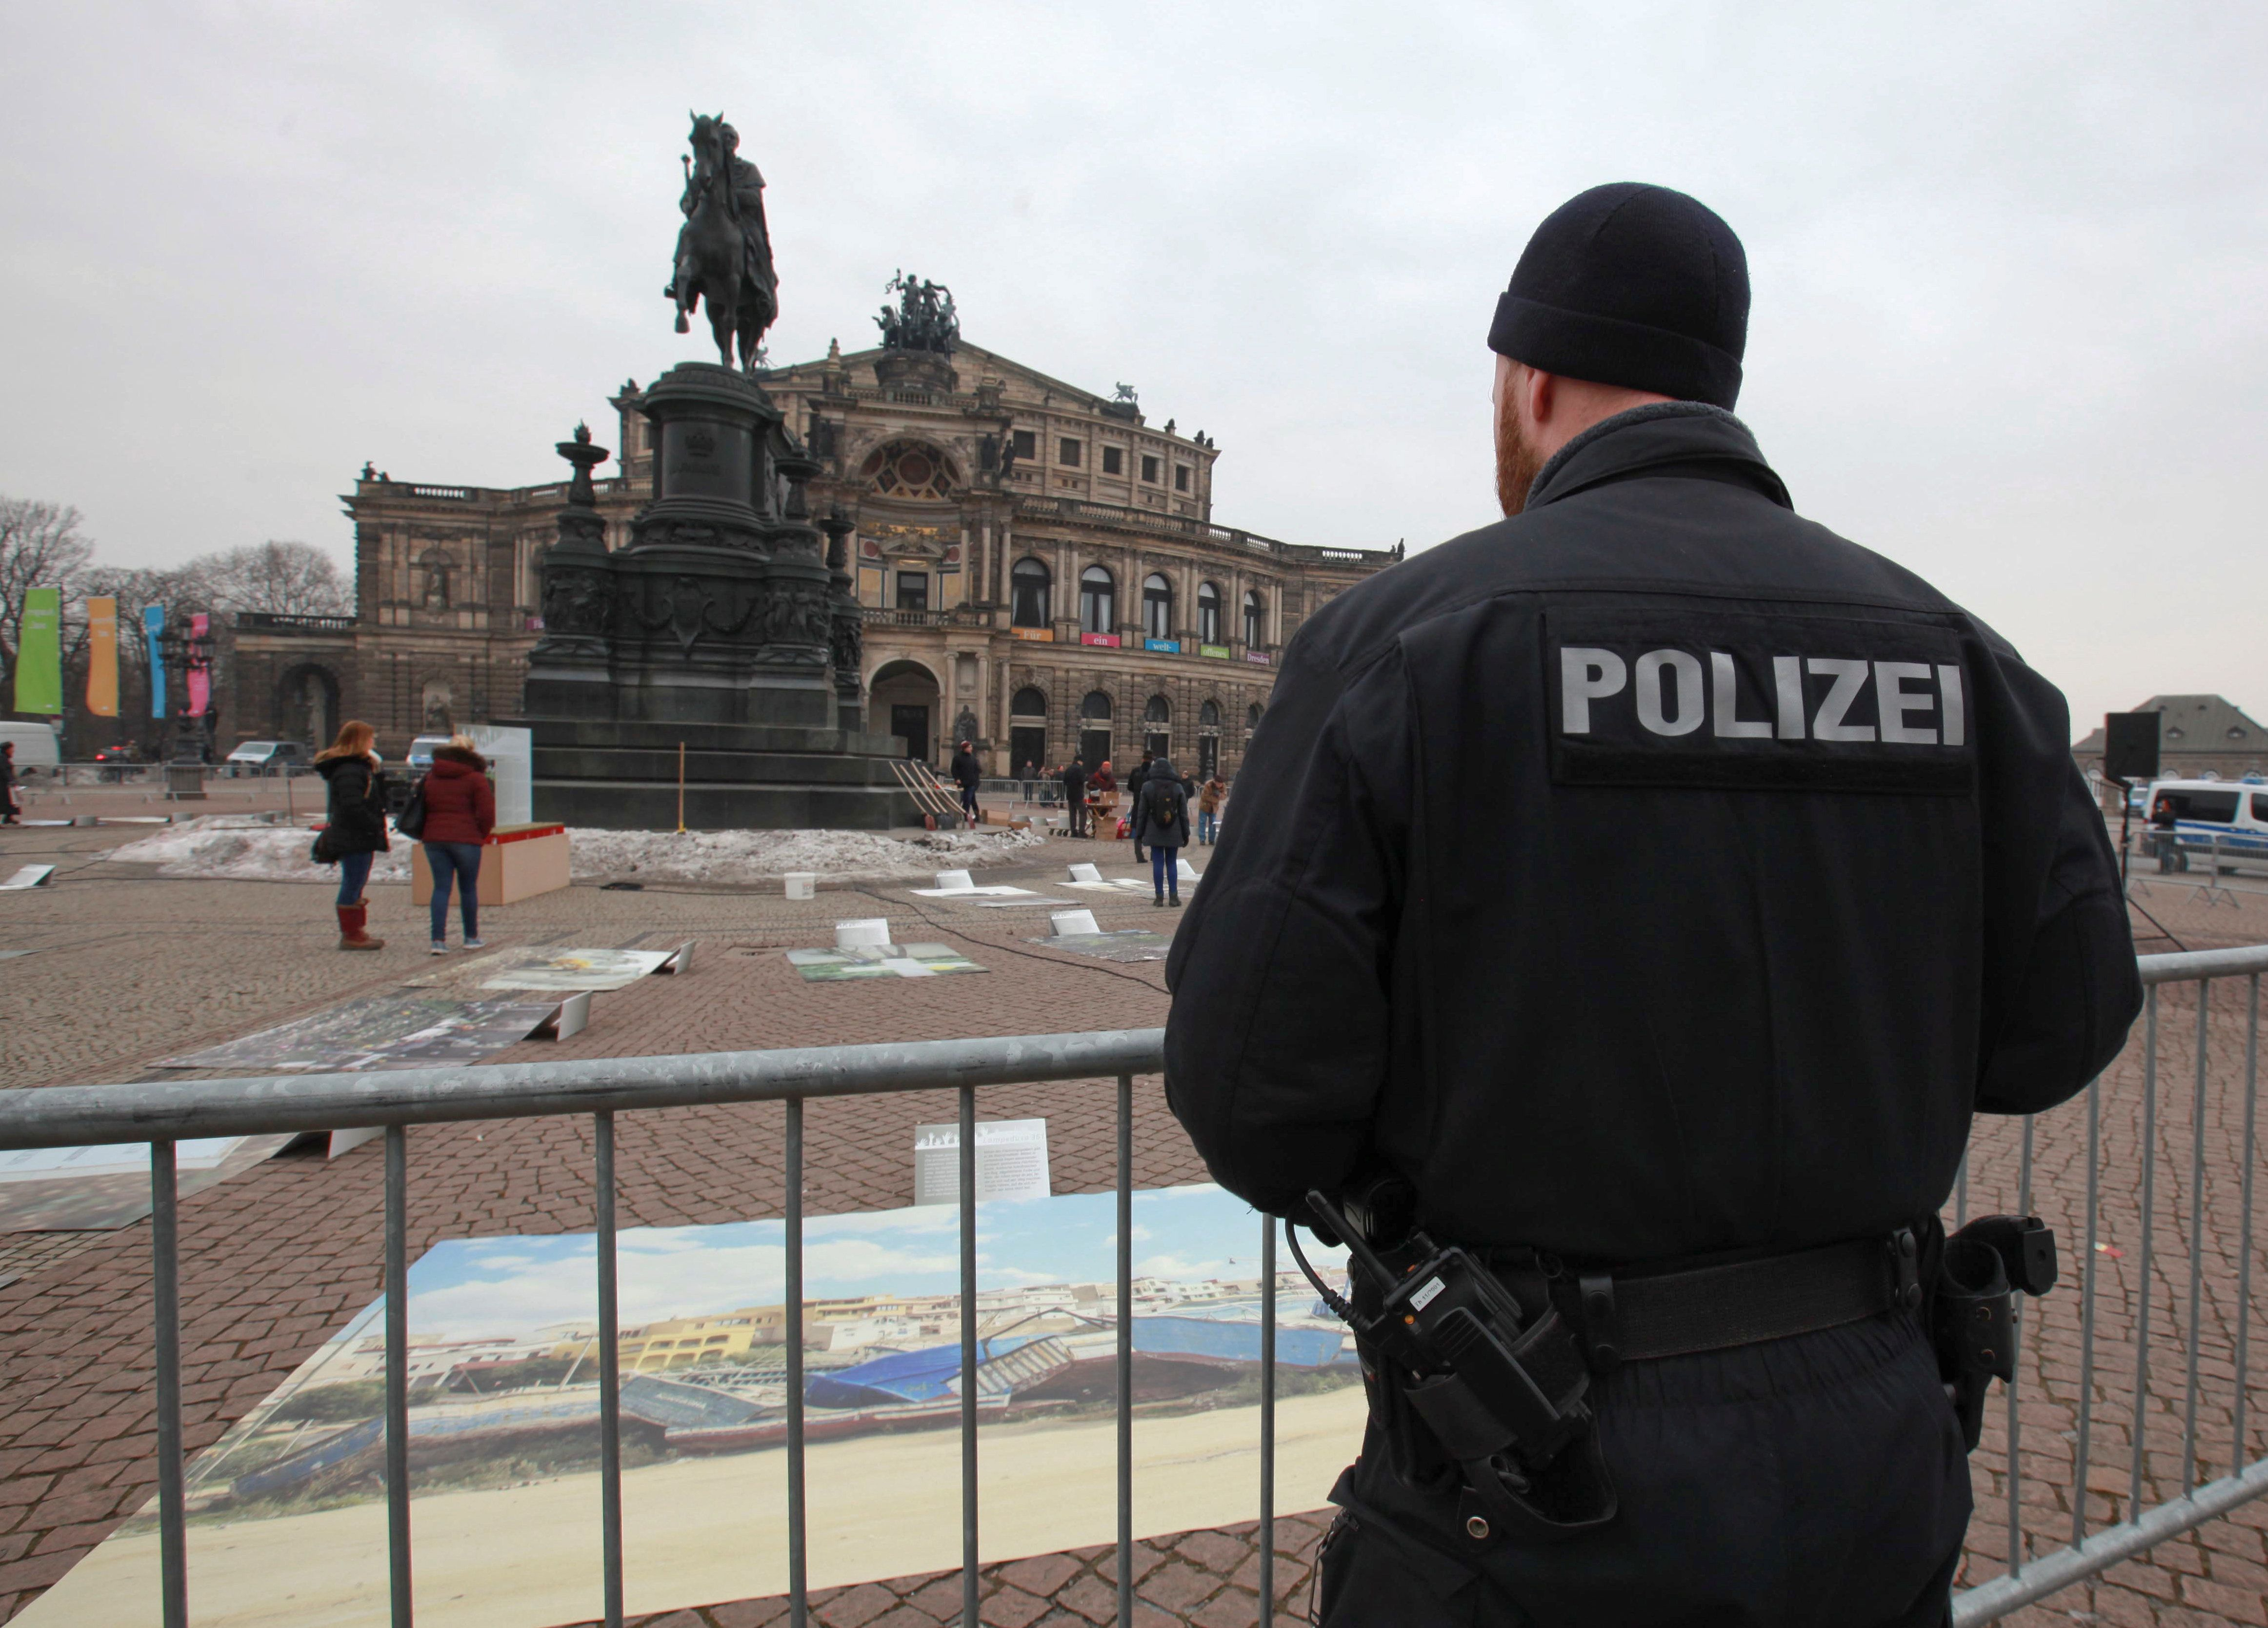 American Tourist Punched For Giving Nazi Salute In Germany